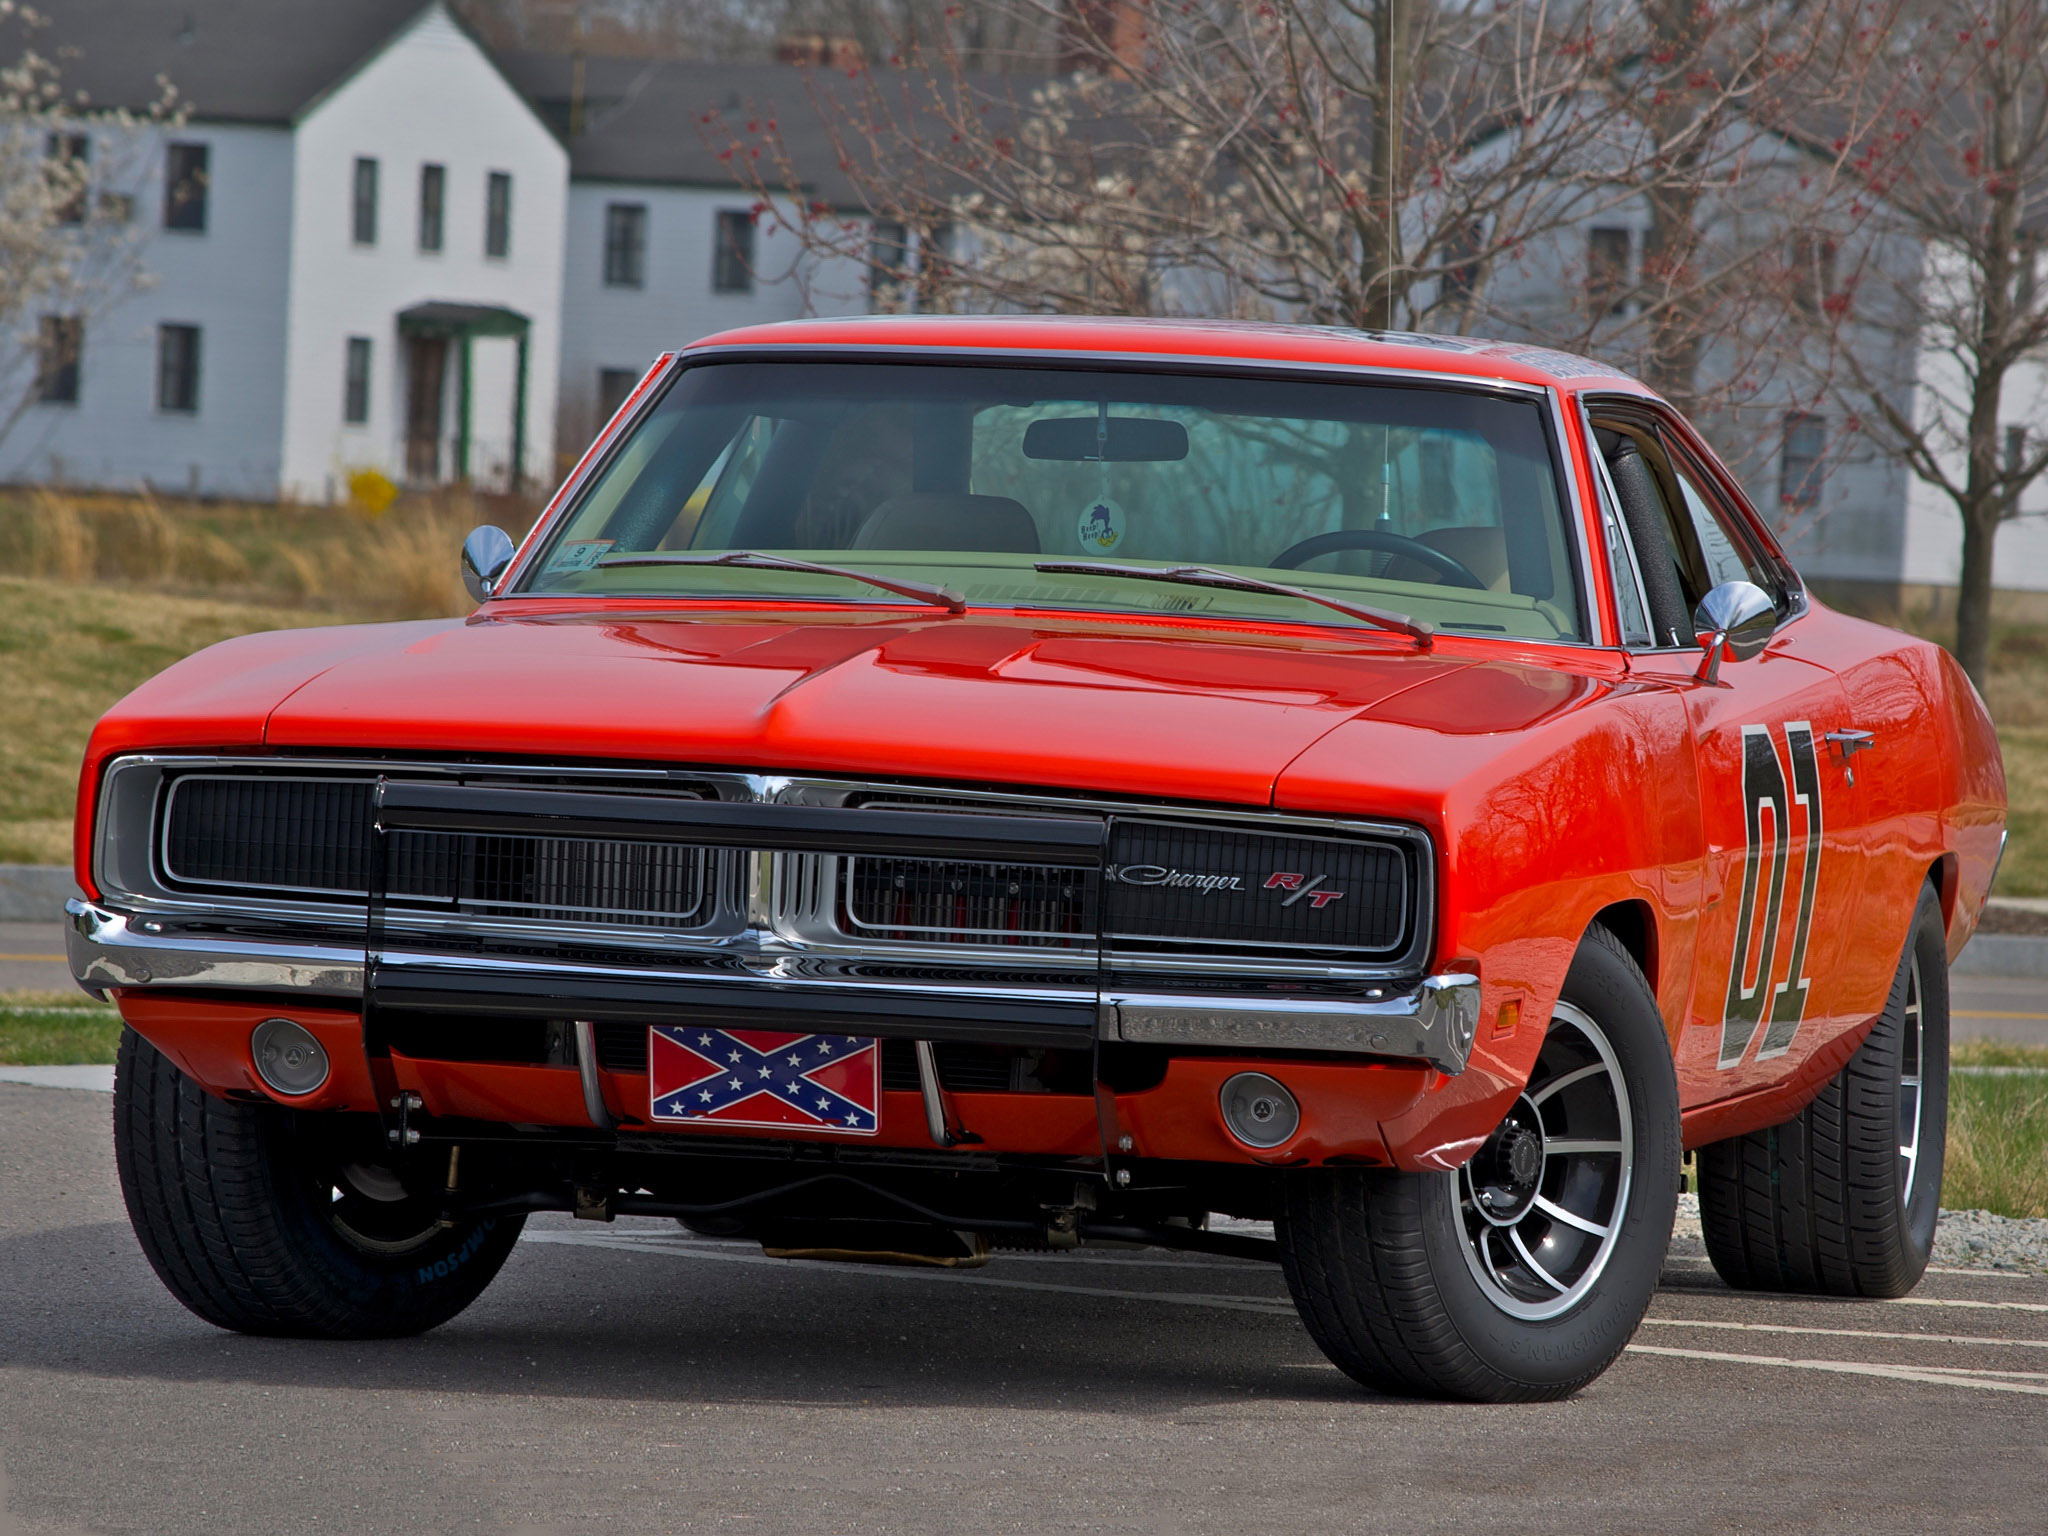 1969 Dodge Charger General Lee Classic Muscle Car For Sale: 1969 Dodge Charger General Lee Muscle Hot Rod Rods Stunt